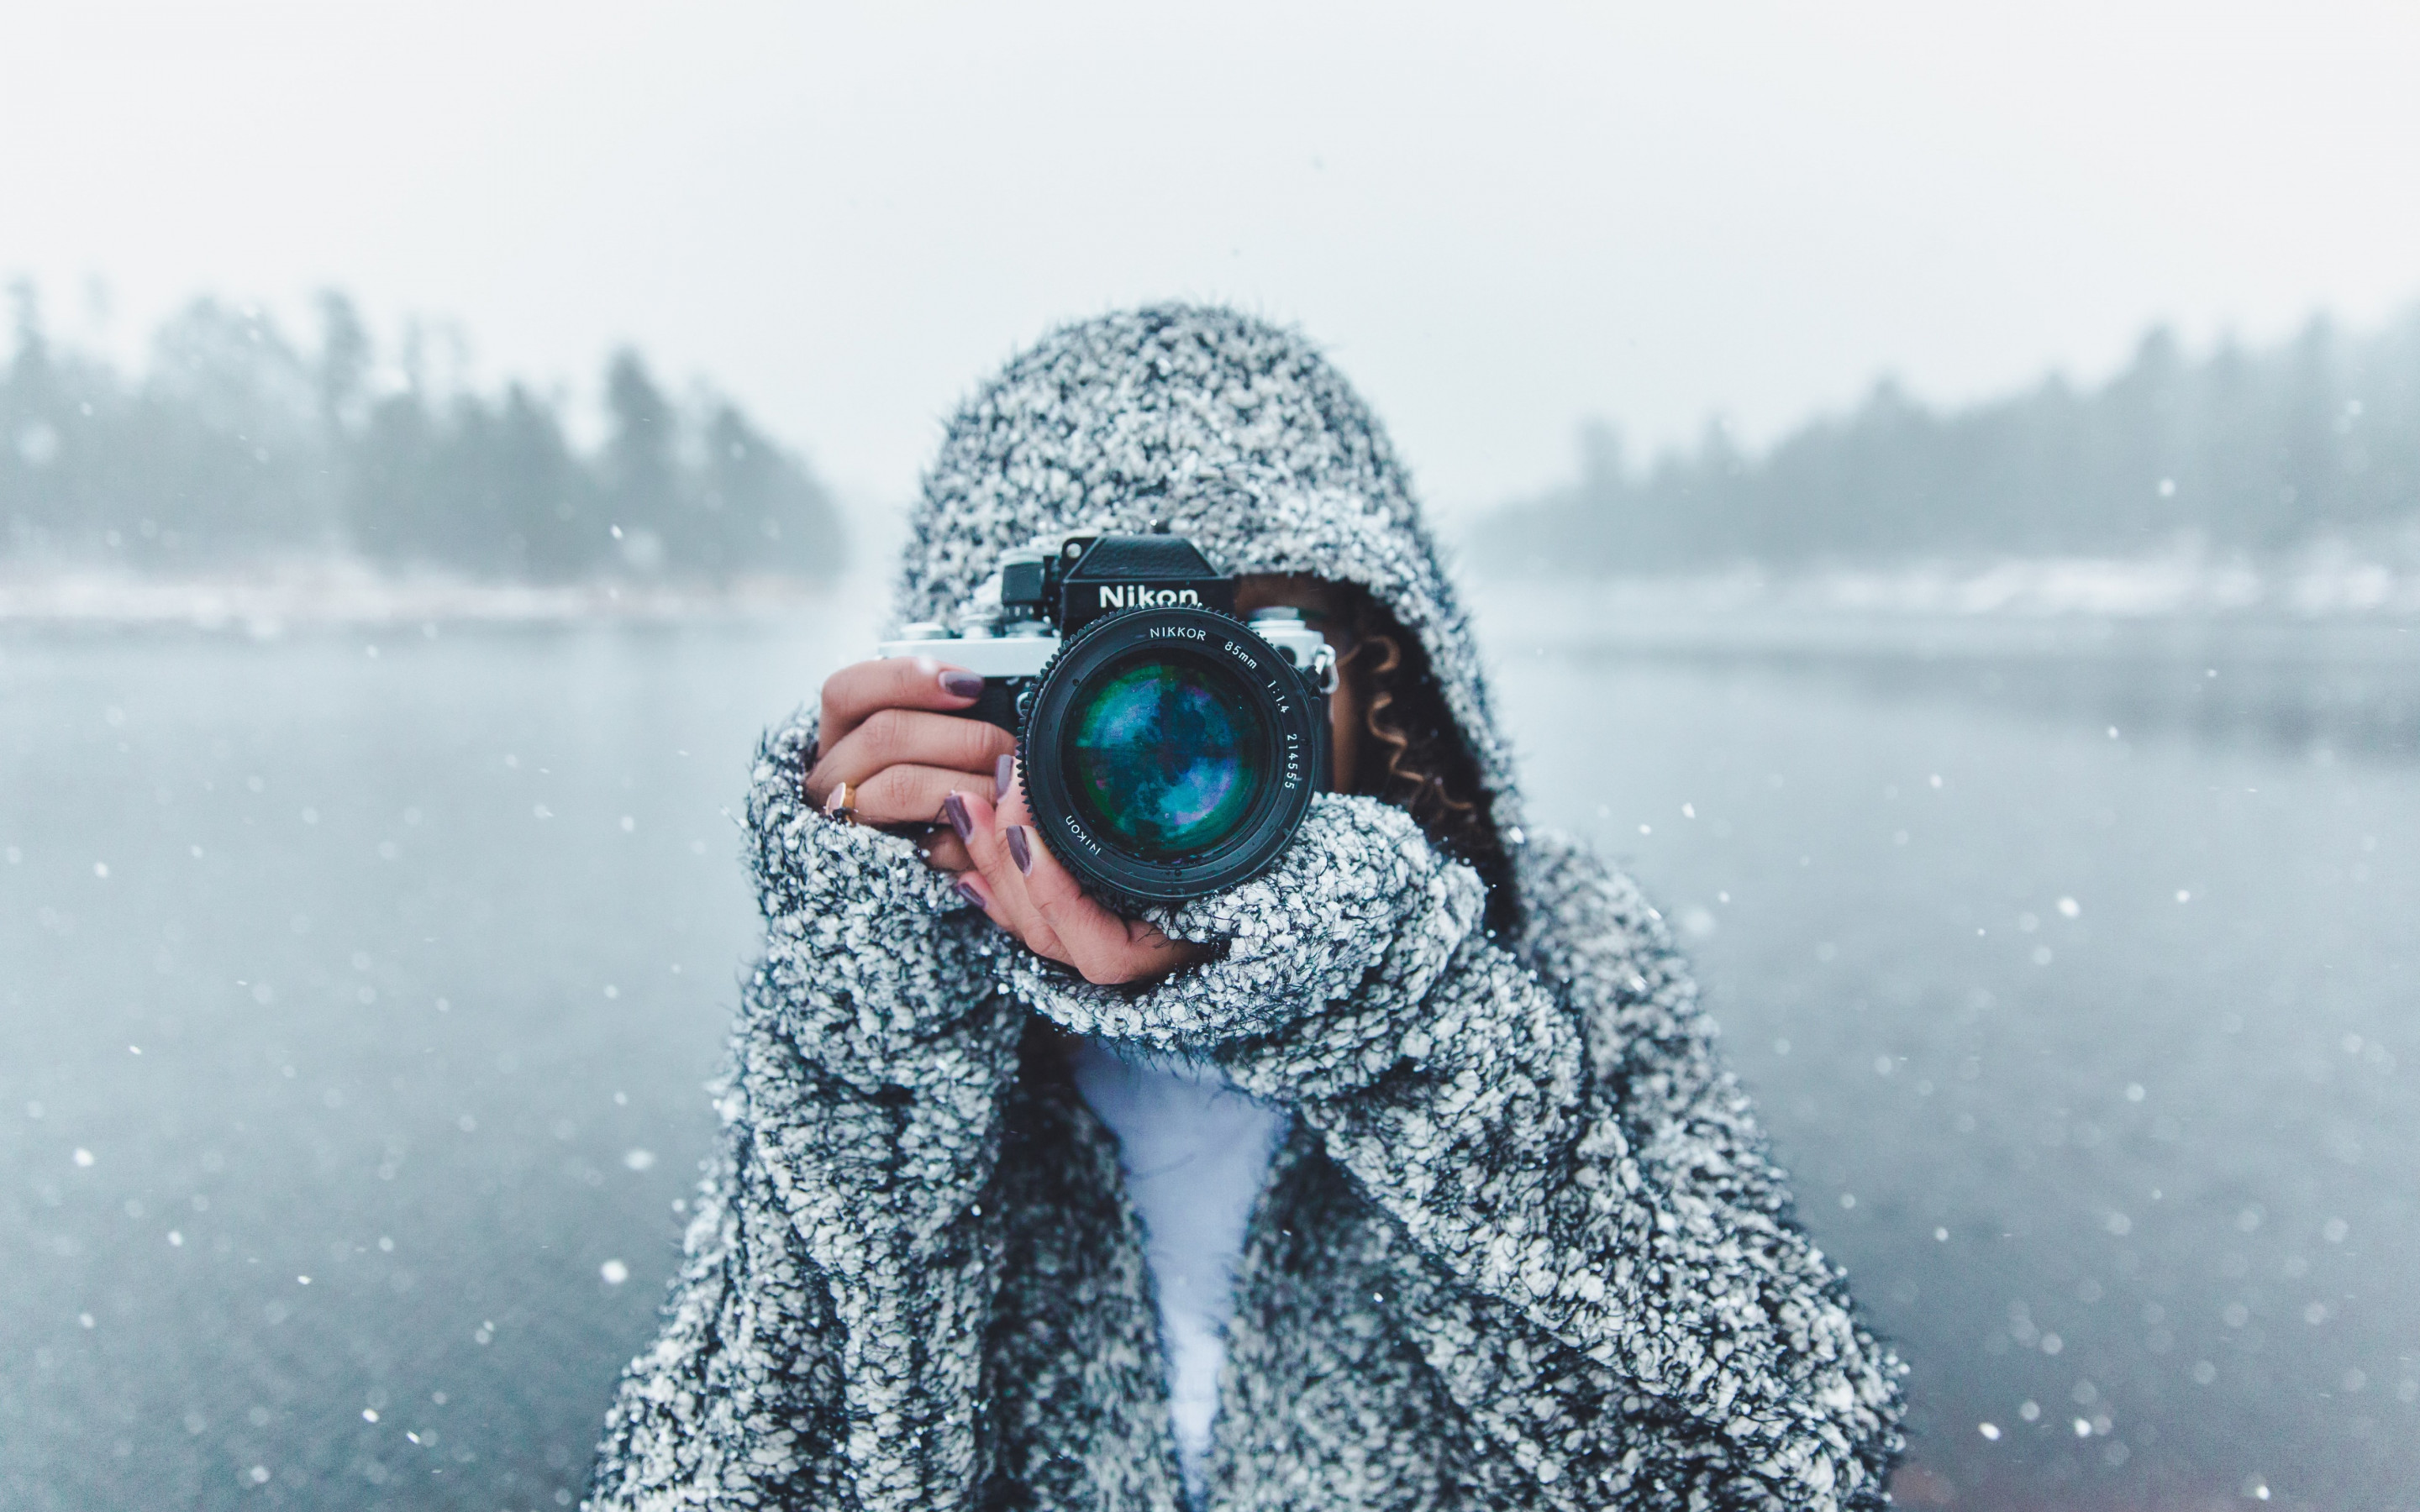 Photographer with Nikon camera wallpaper 2880x1800